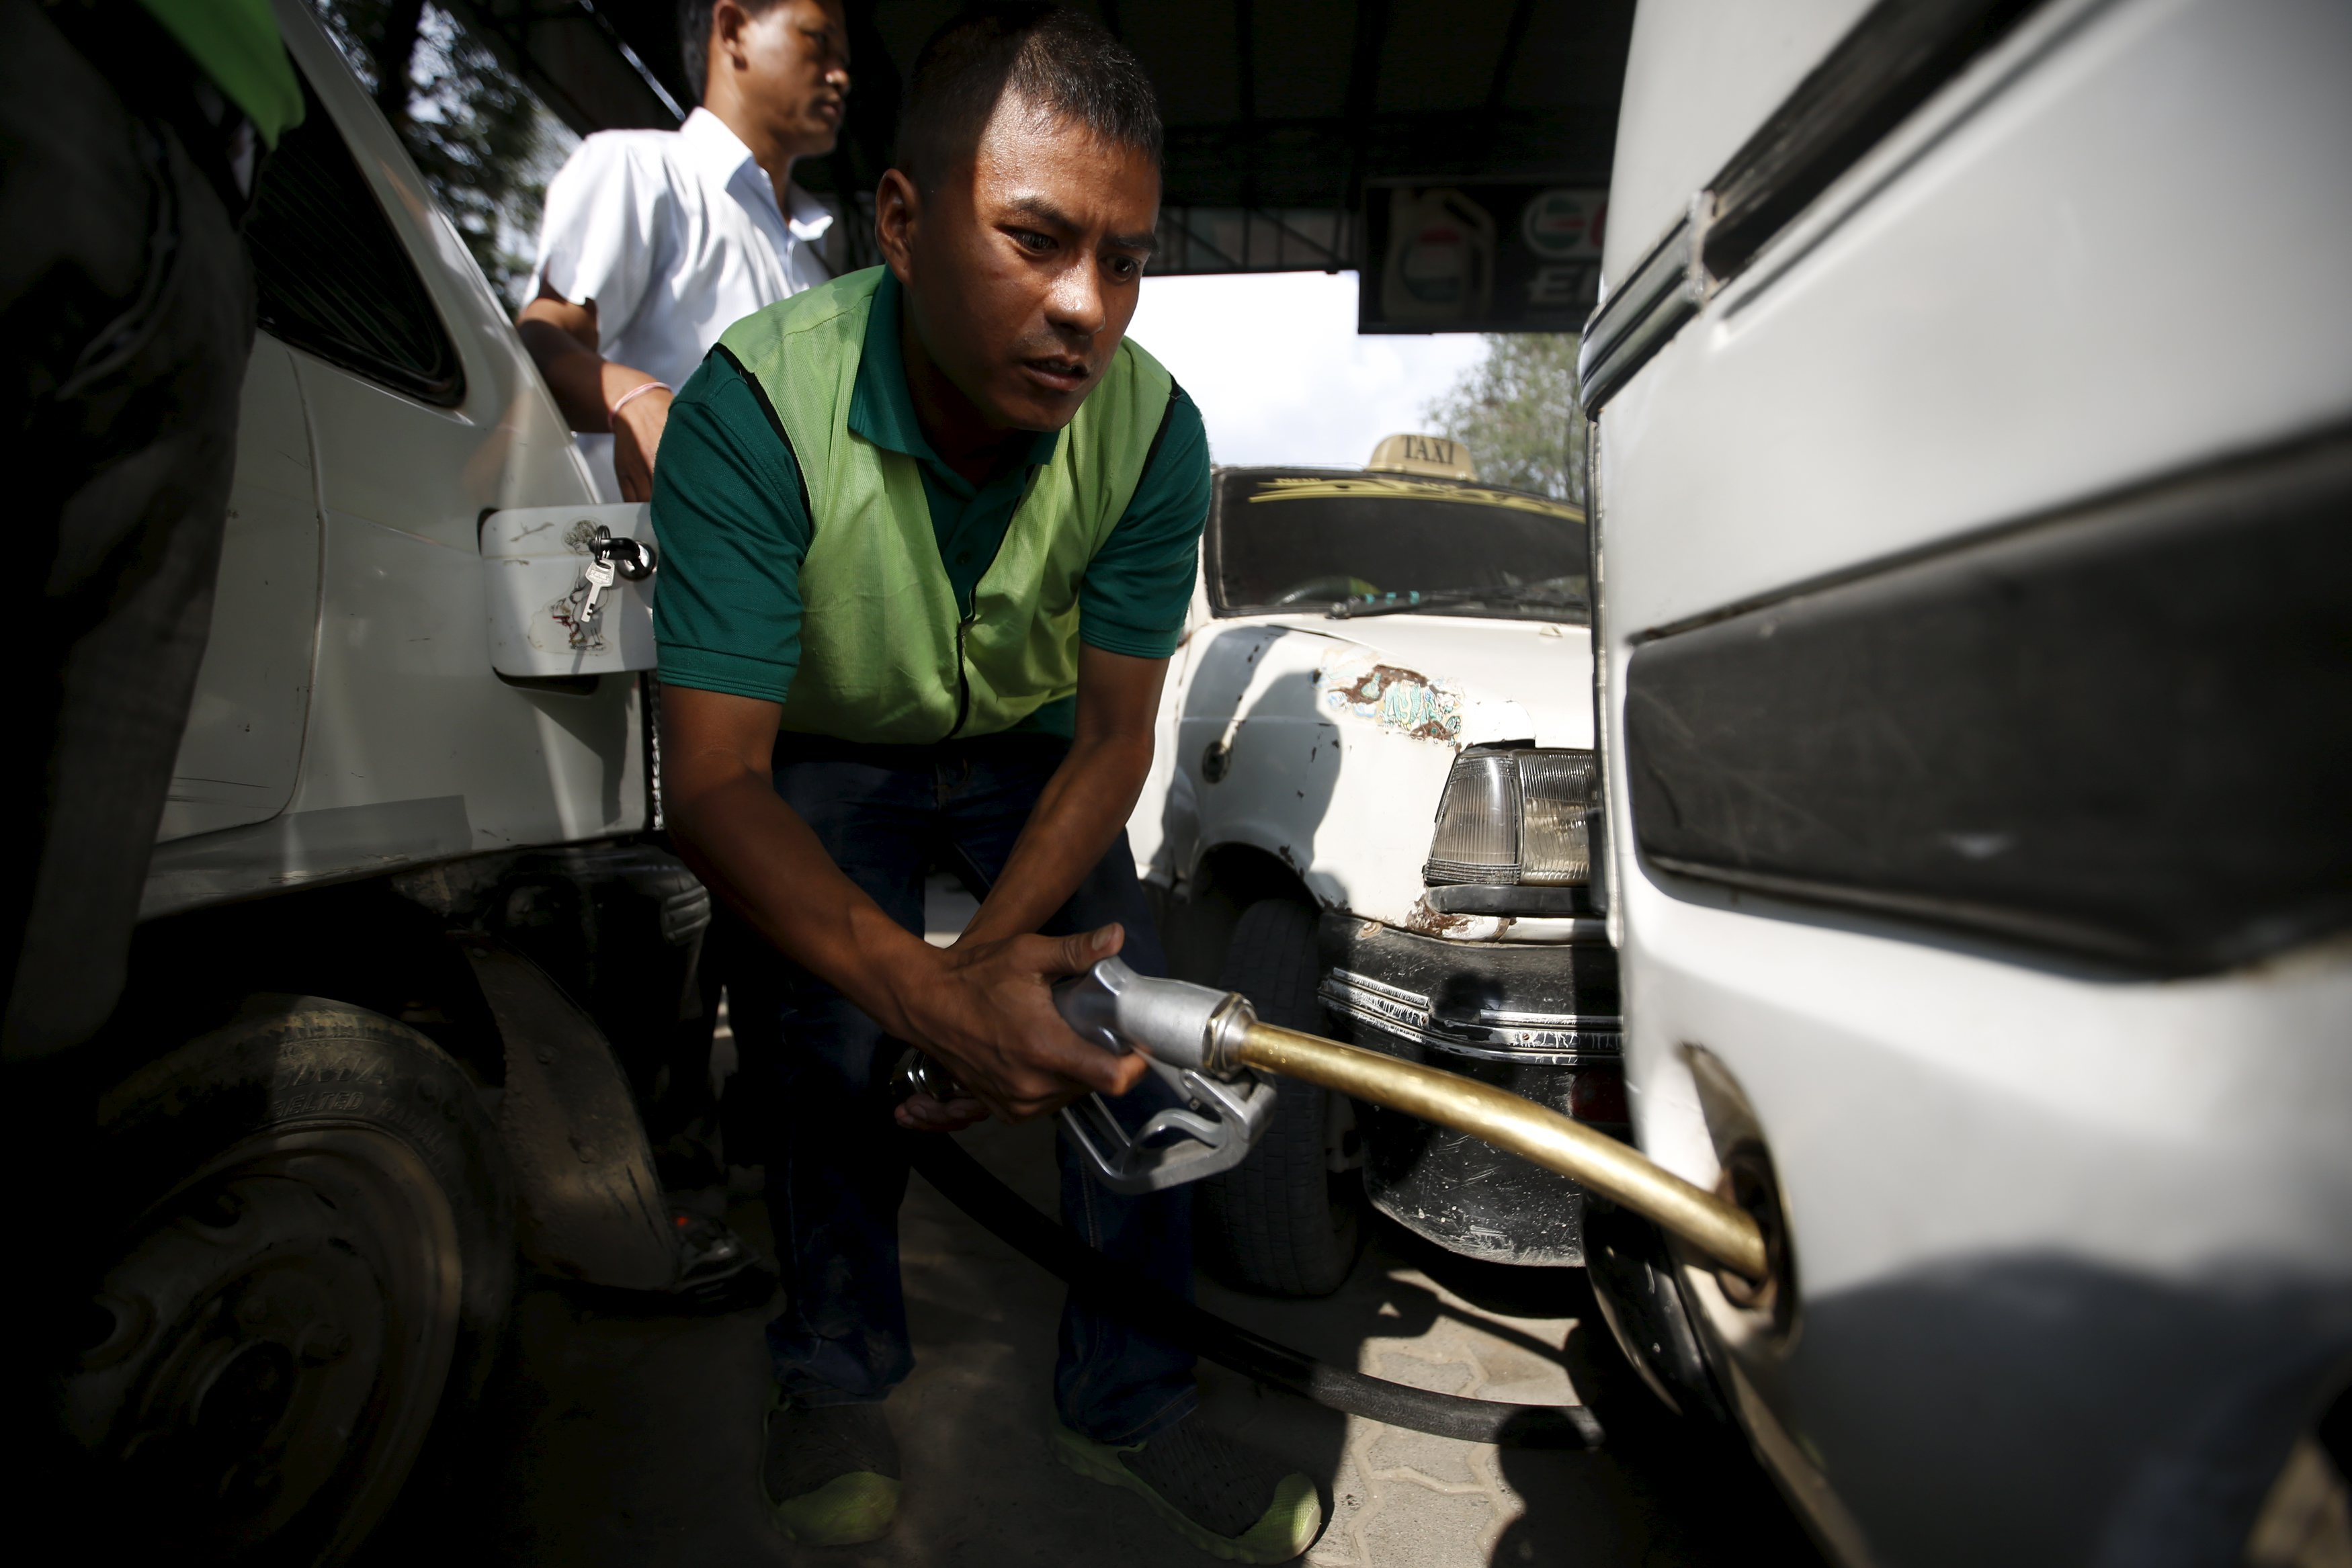 A worker refills petrol on a vehicle at a fuel station in Kathmandu on September 28, 2015. Photo: Reuters/File